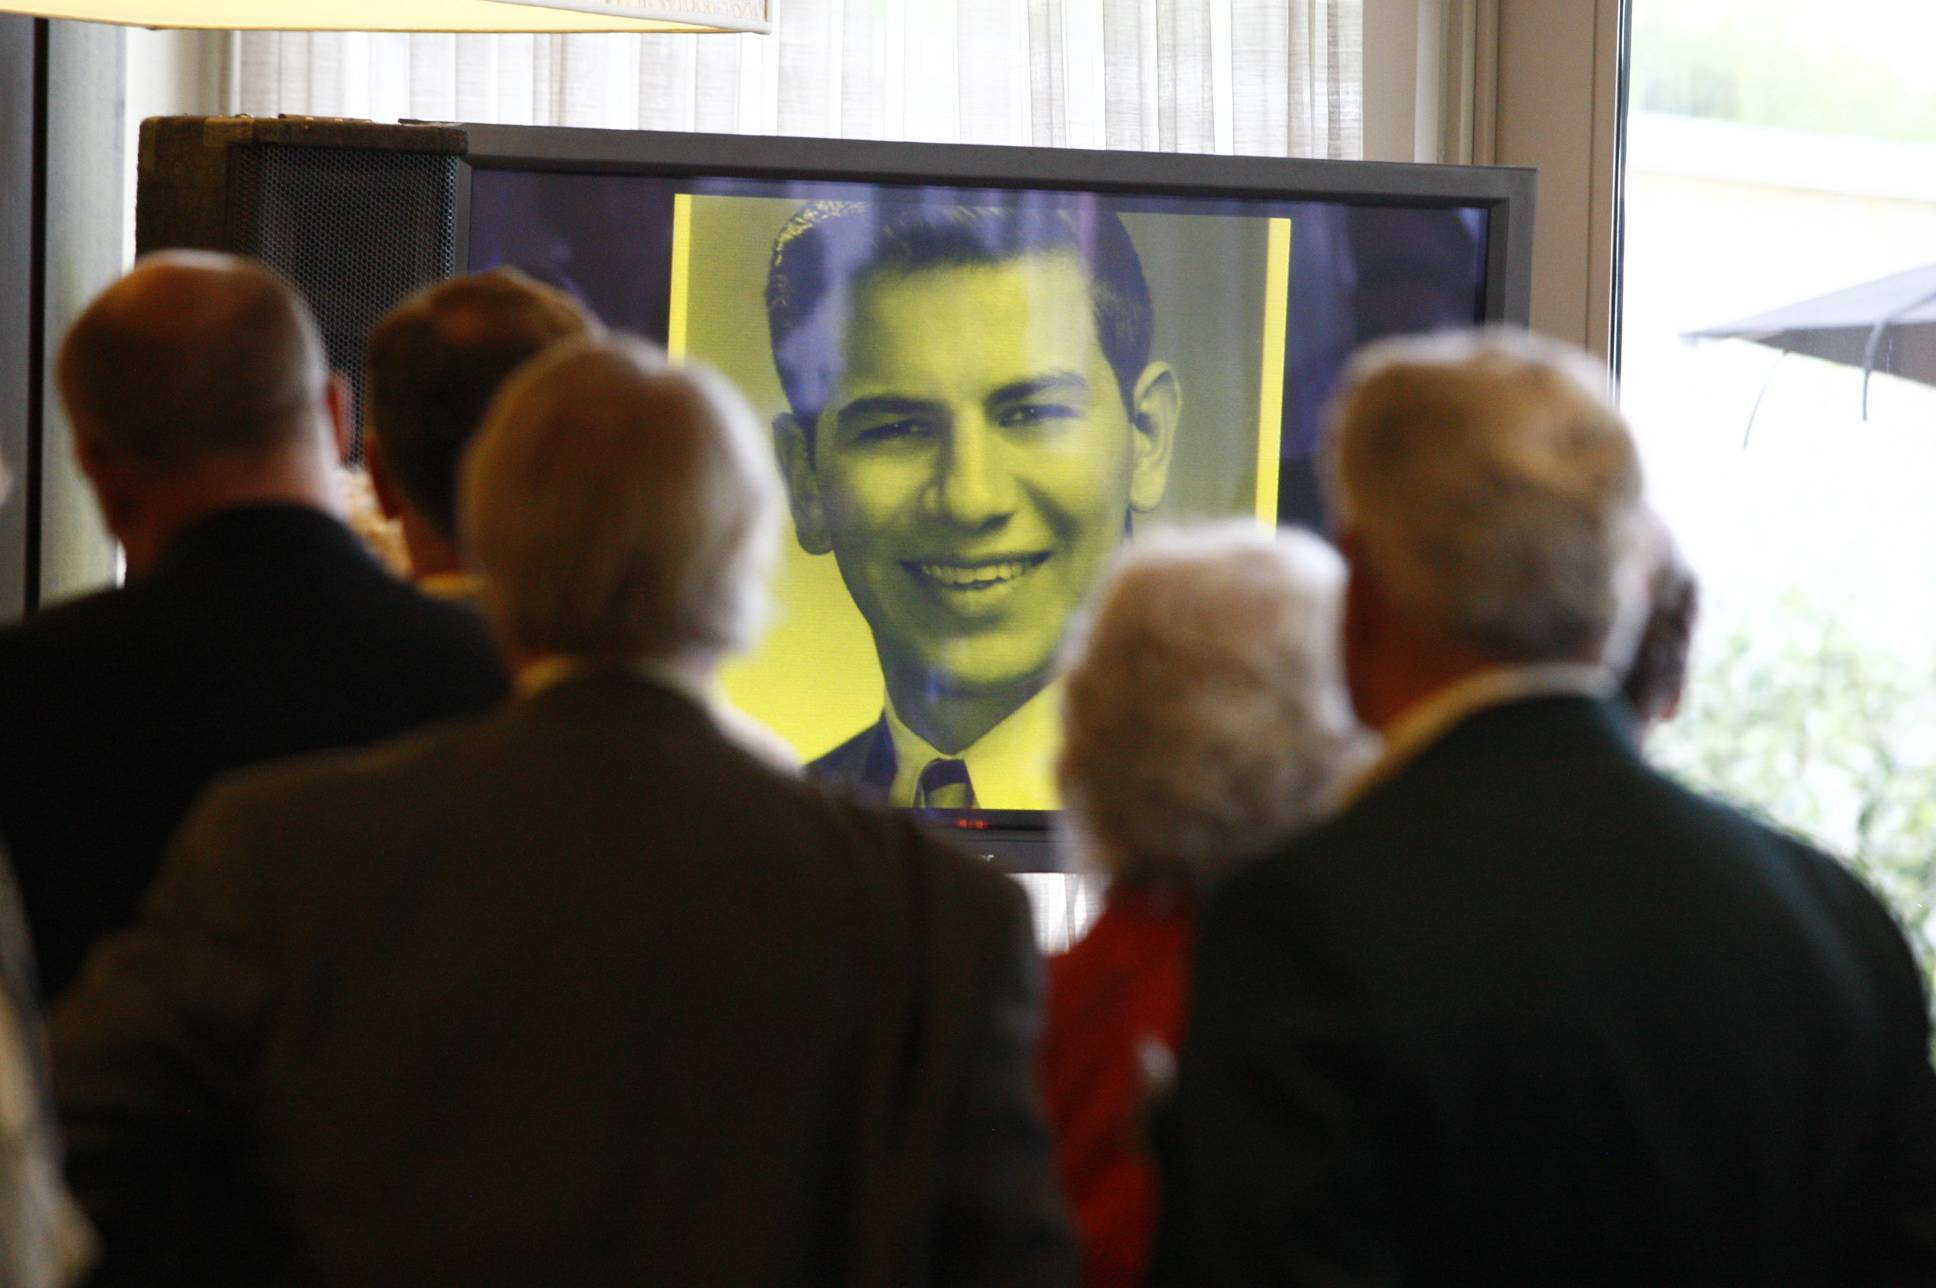 Caption: A video retrospective of Cleve Carney captivates the guests at the gala event celebrating Carney's life. (Press Photography Network/Special to College of DuPage)